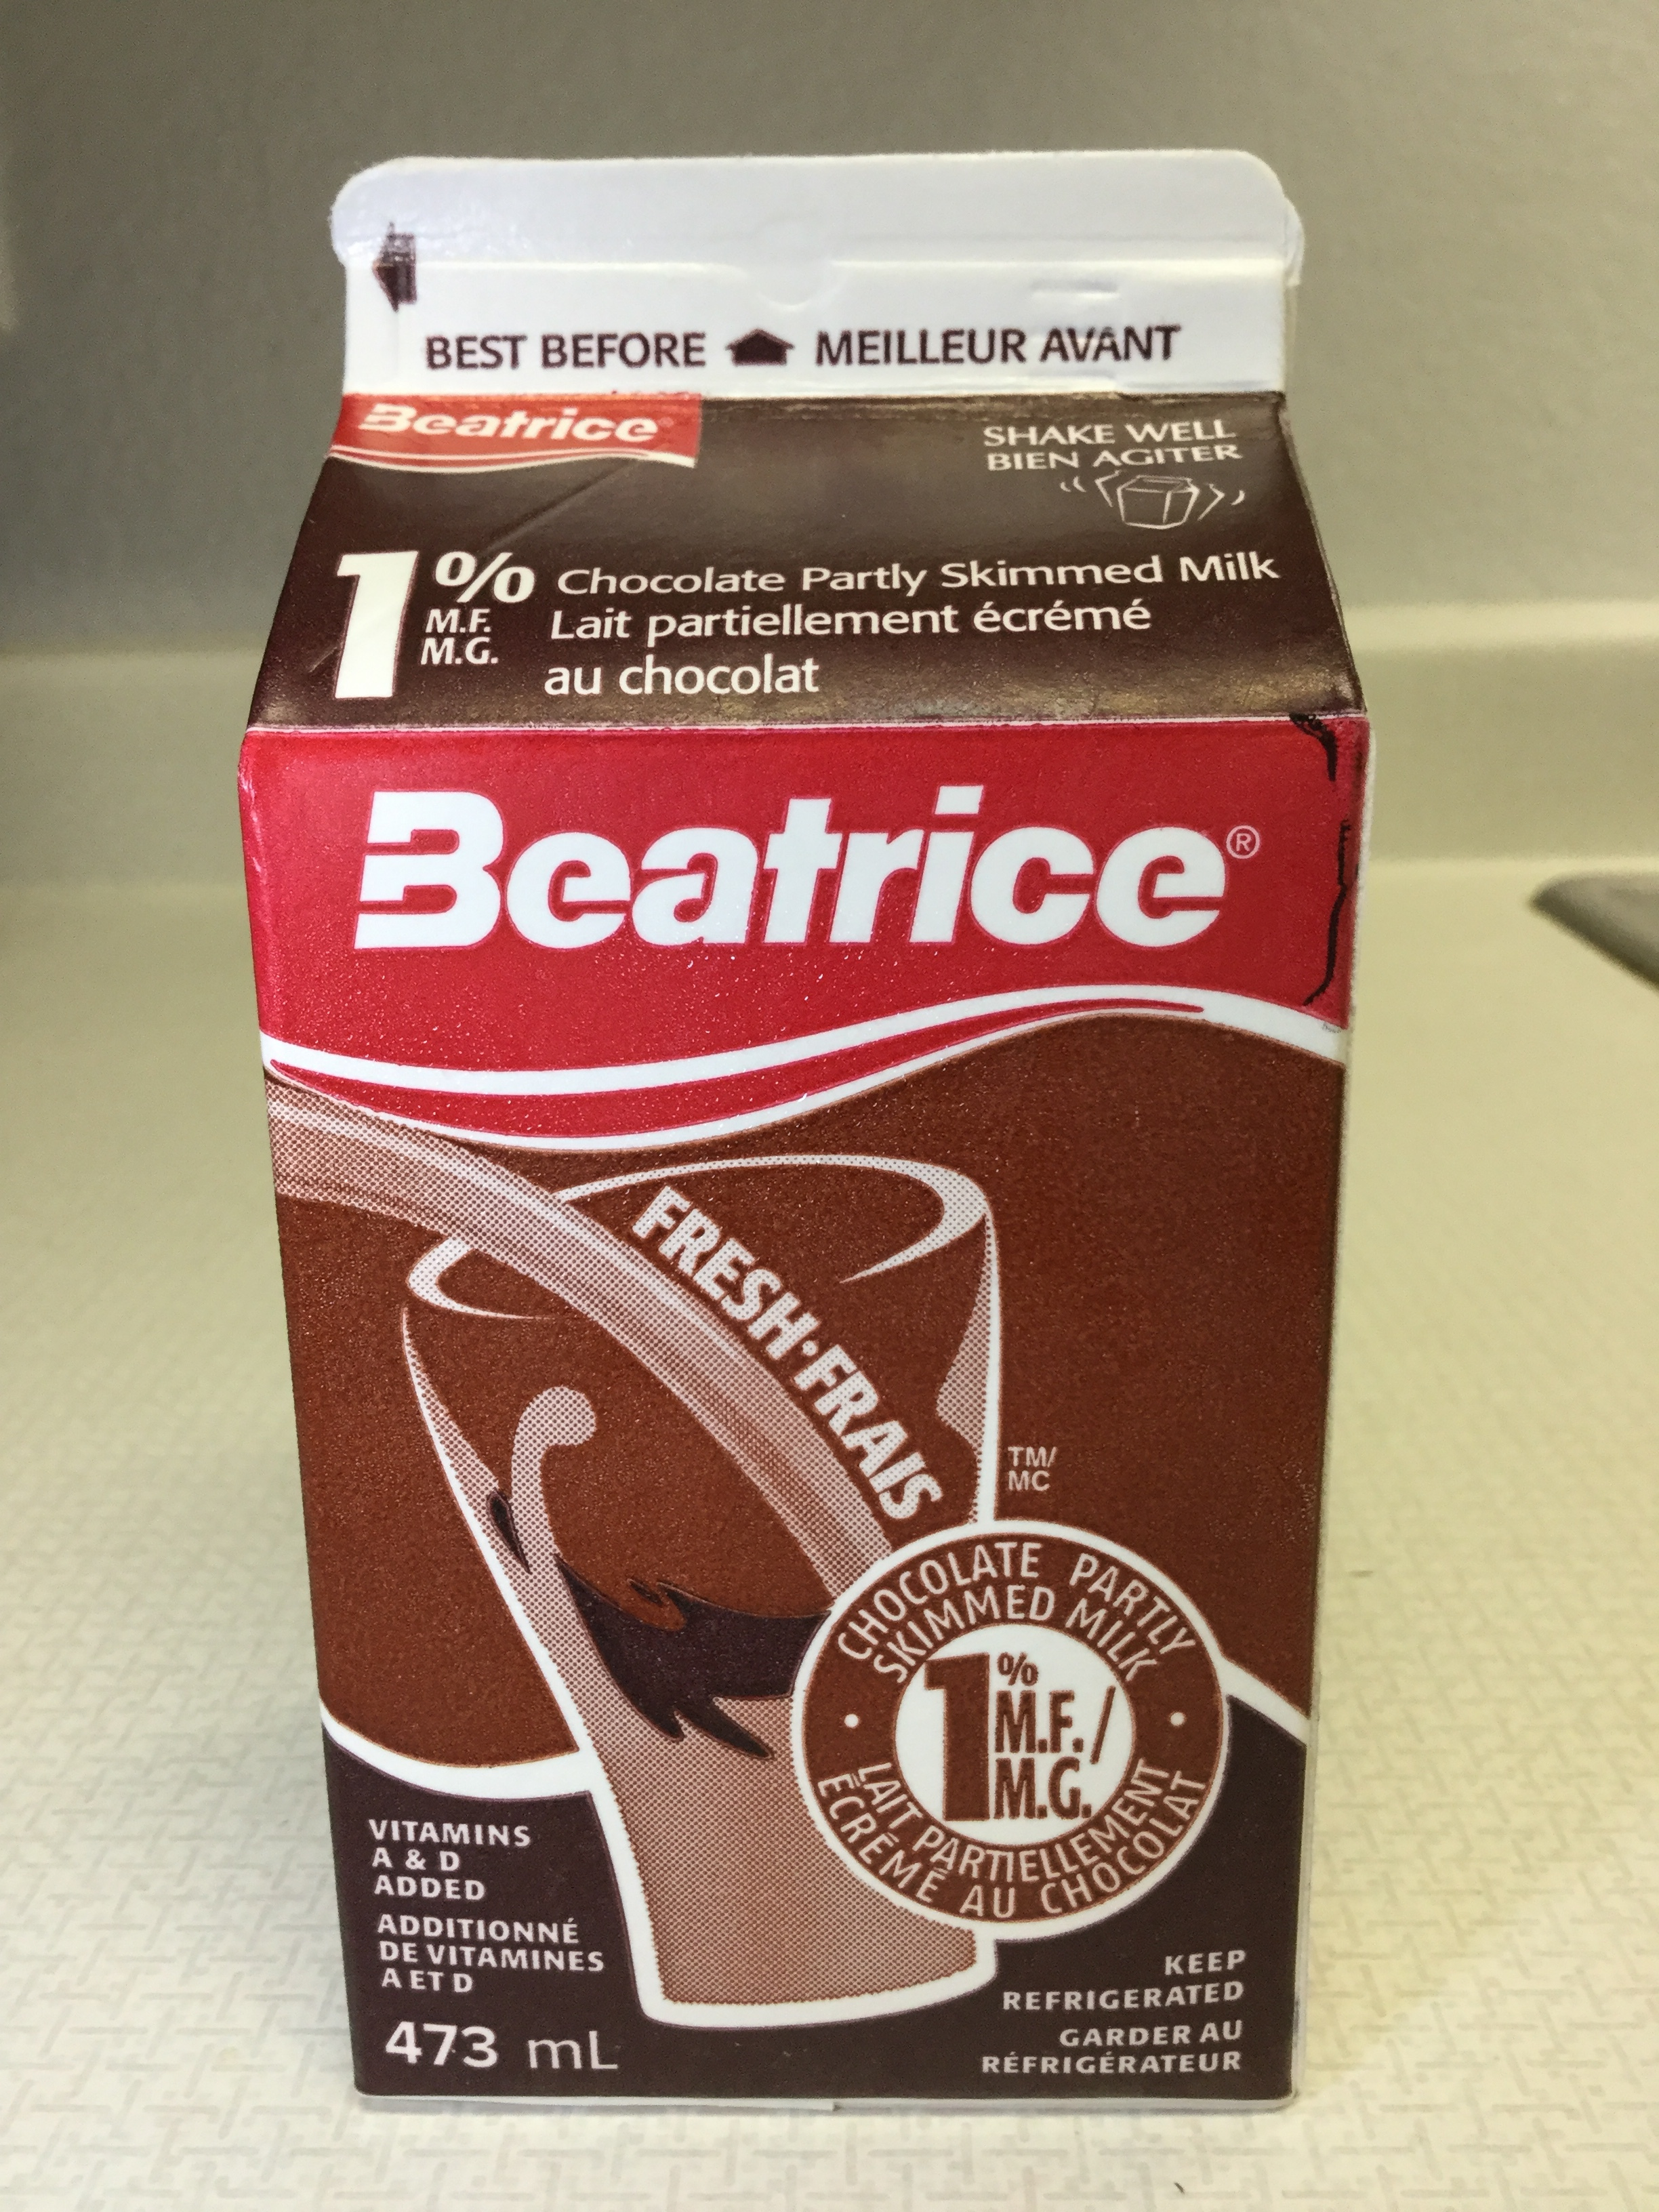 Beatrice Chocolate Partly Skimmed Milk Side 3